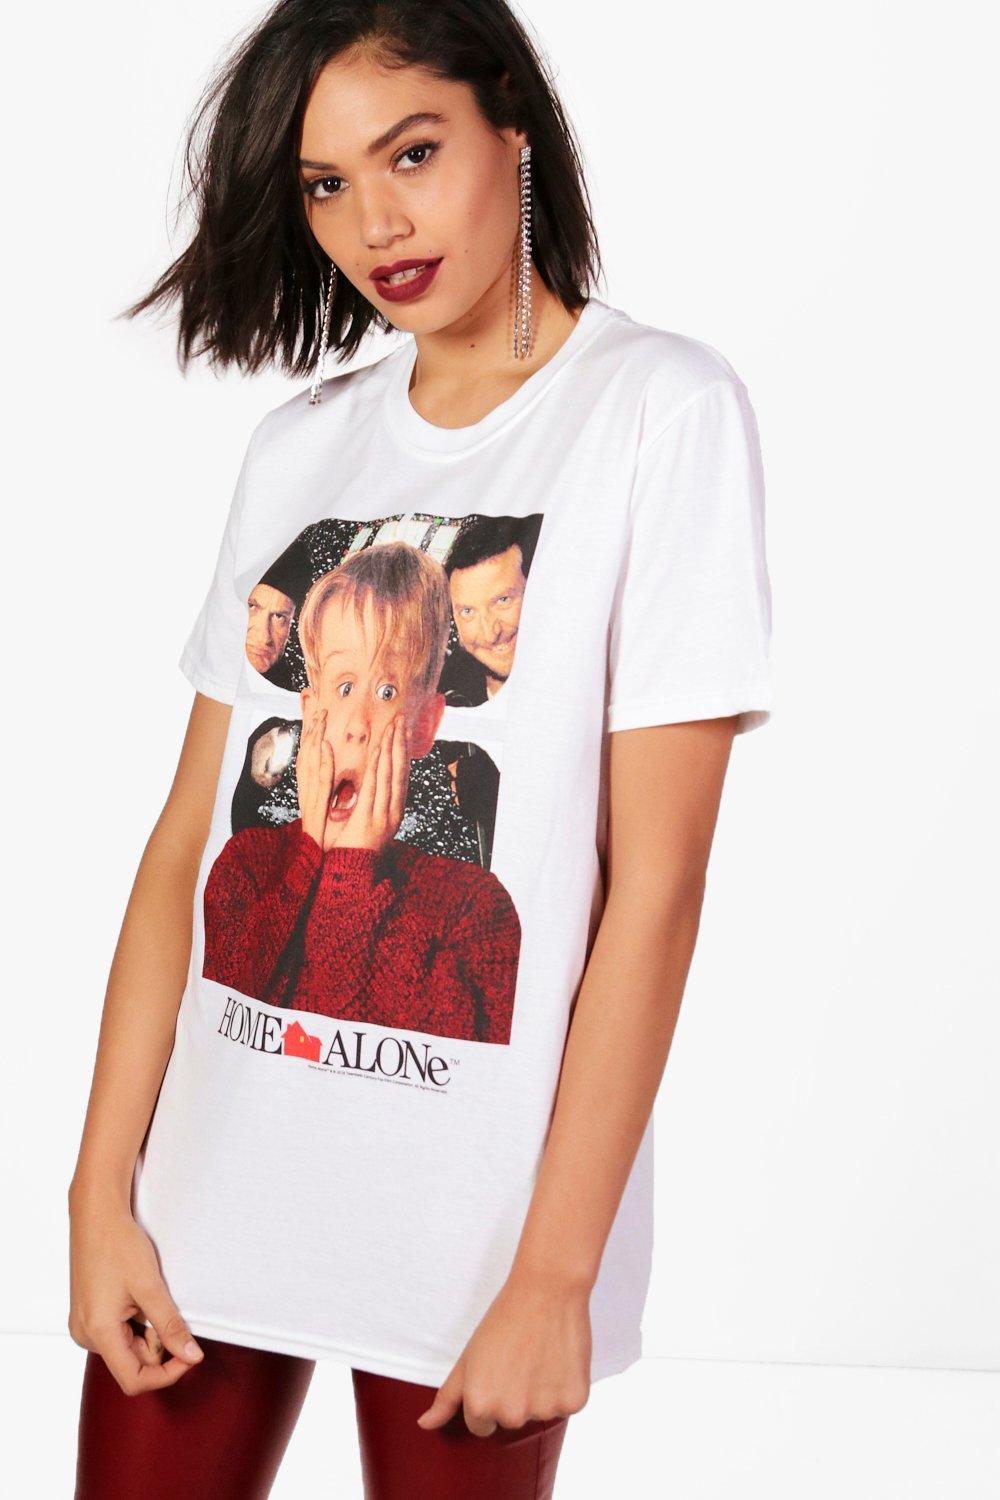 Erin Home Alone Licence T-Shirt